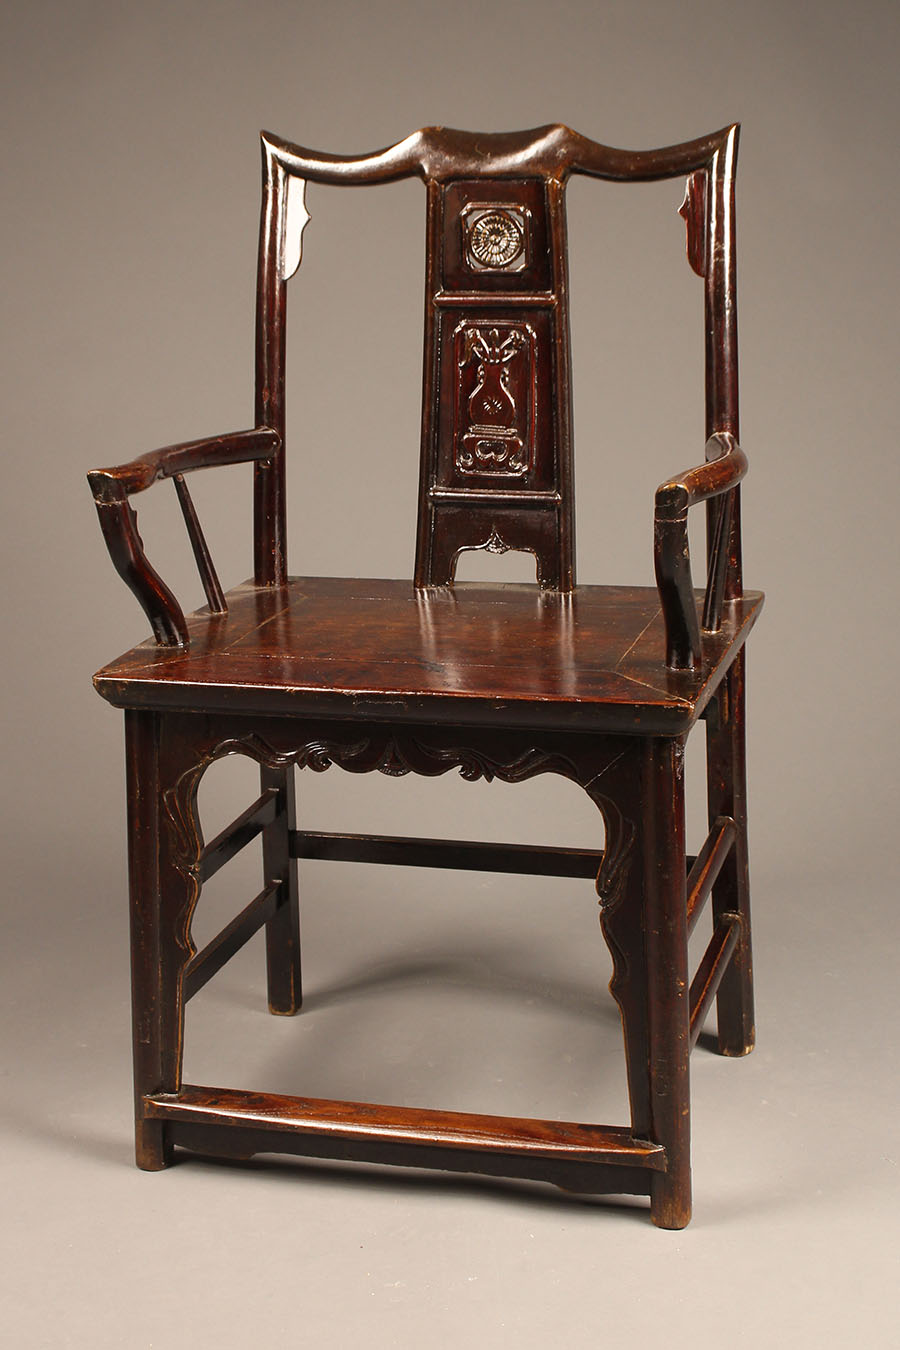 Antique pair of Chinese court chairs made in teak wood